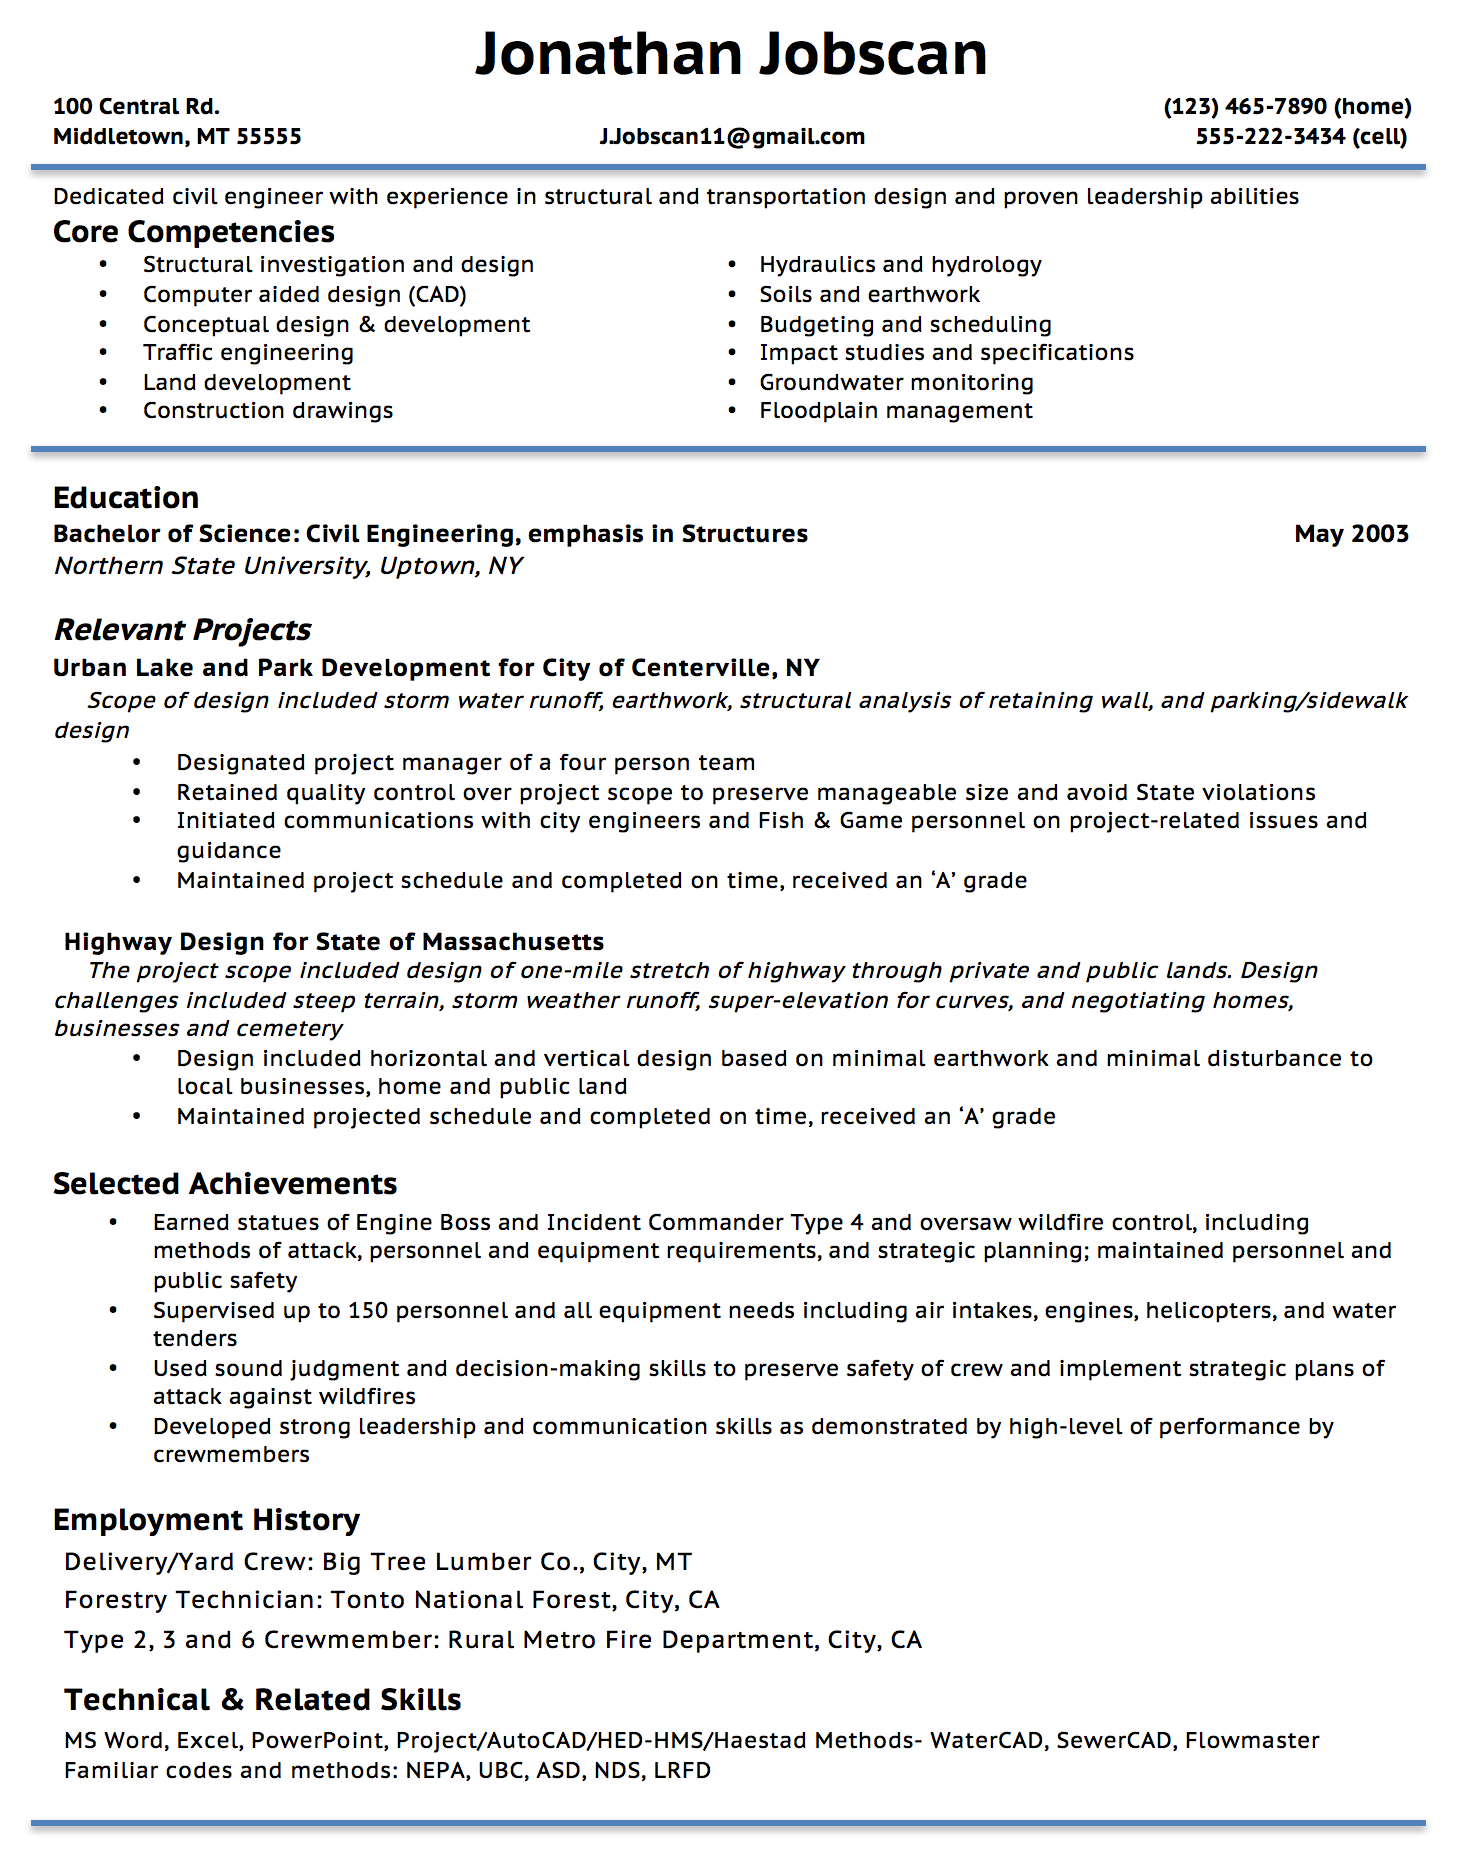 Opposenewapstandardsus  Prepossessing Resume Writing Guide  Jobscan With Hot Example Of A Functional Resume Format With Divine Resume Posting Websites Also Free Executive Resume Templates In Addition Psychiatric Nurse Resume And Objective Examples For Resumes As Well As List Skills On Resume Additionally Resume Restaurant From Jobscanco With Opposenewapstandardsus  Hot Resume Writing Guide  Jobscan With Divine Example Of A Functional Resume Format And Prepossessing Resume Posting Websites Also Free Executive Resume Templates In Addition Psychiatric Nurse Resume From Jobscanco